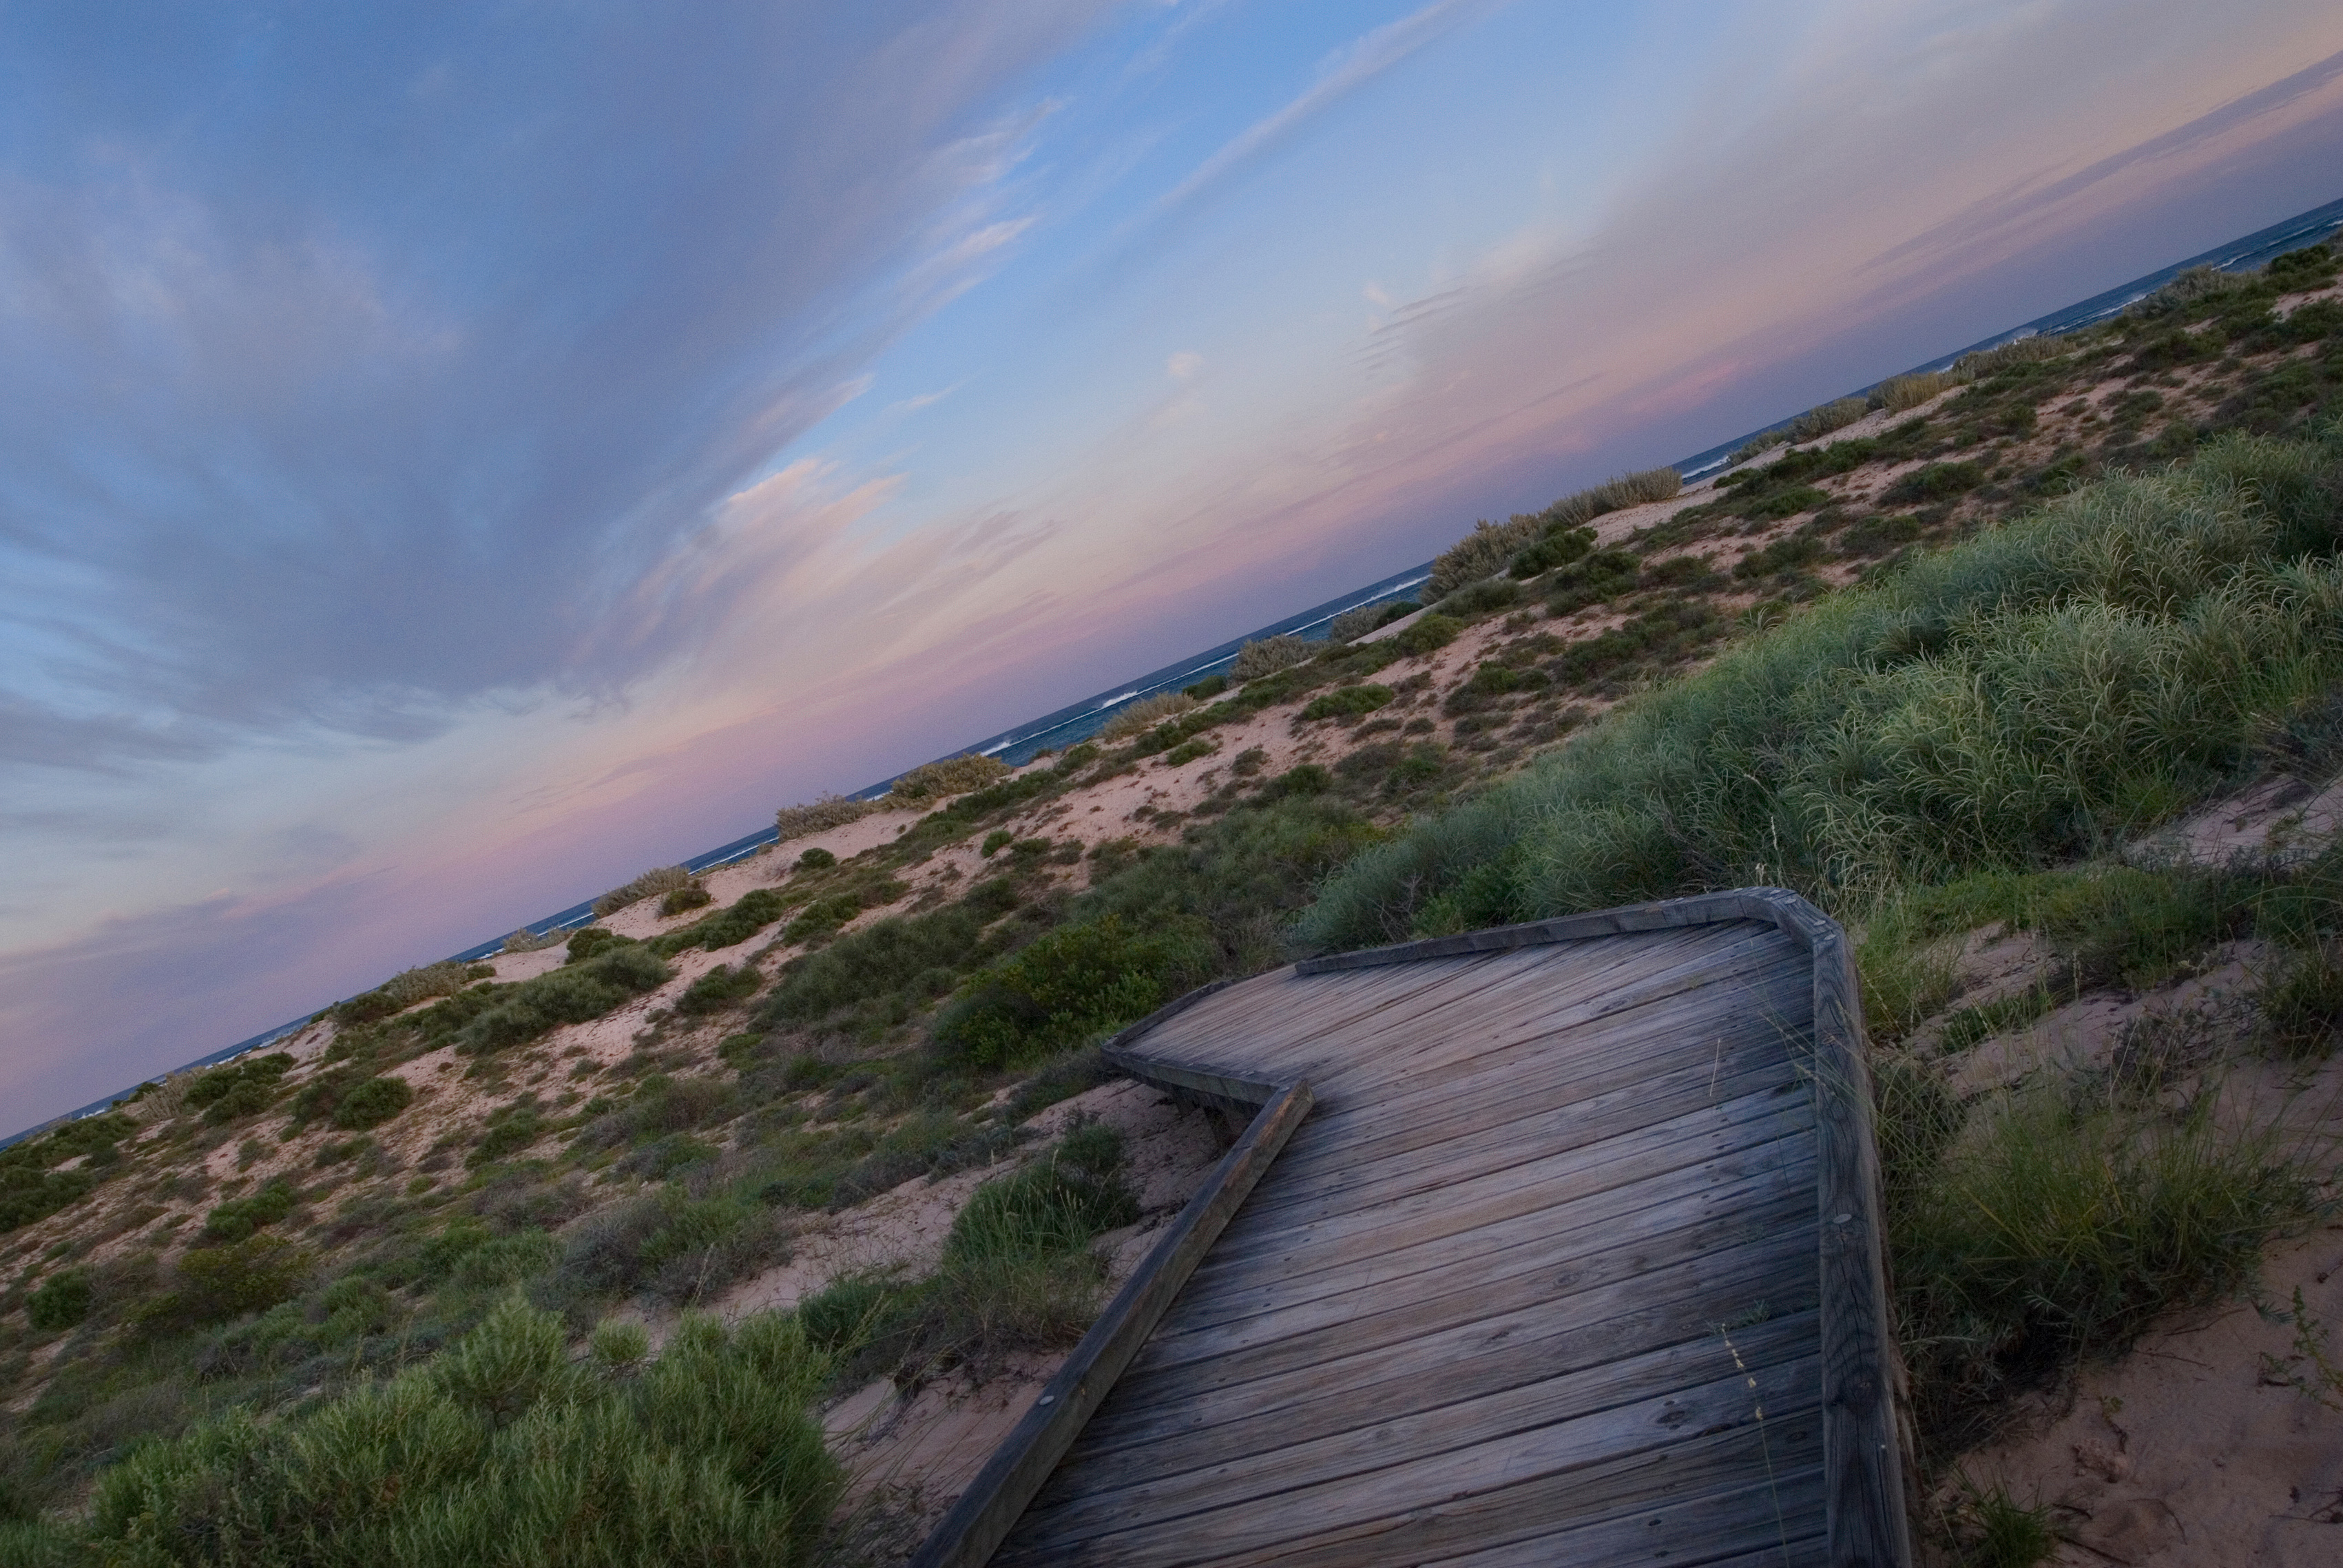 Sal-Salis_Ningaloo-Reef_Sand-Dunes-Walking-Path - Click to view larger version